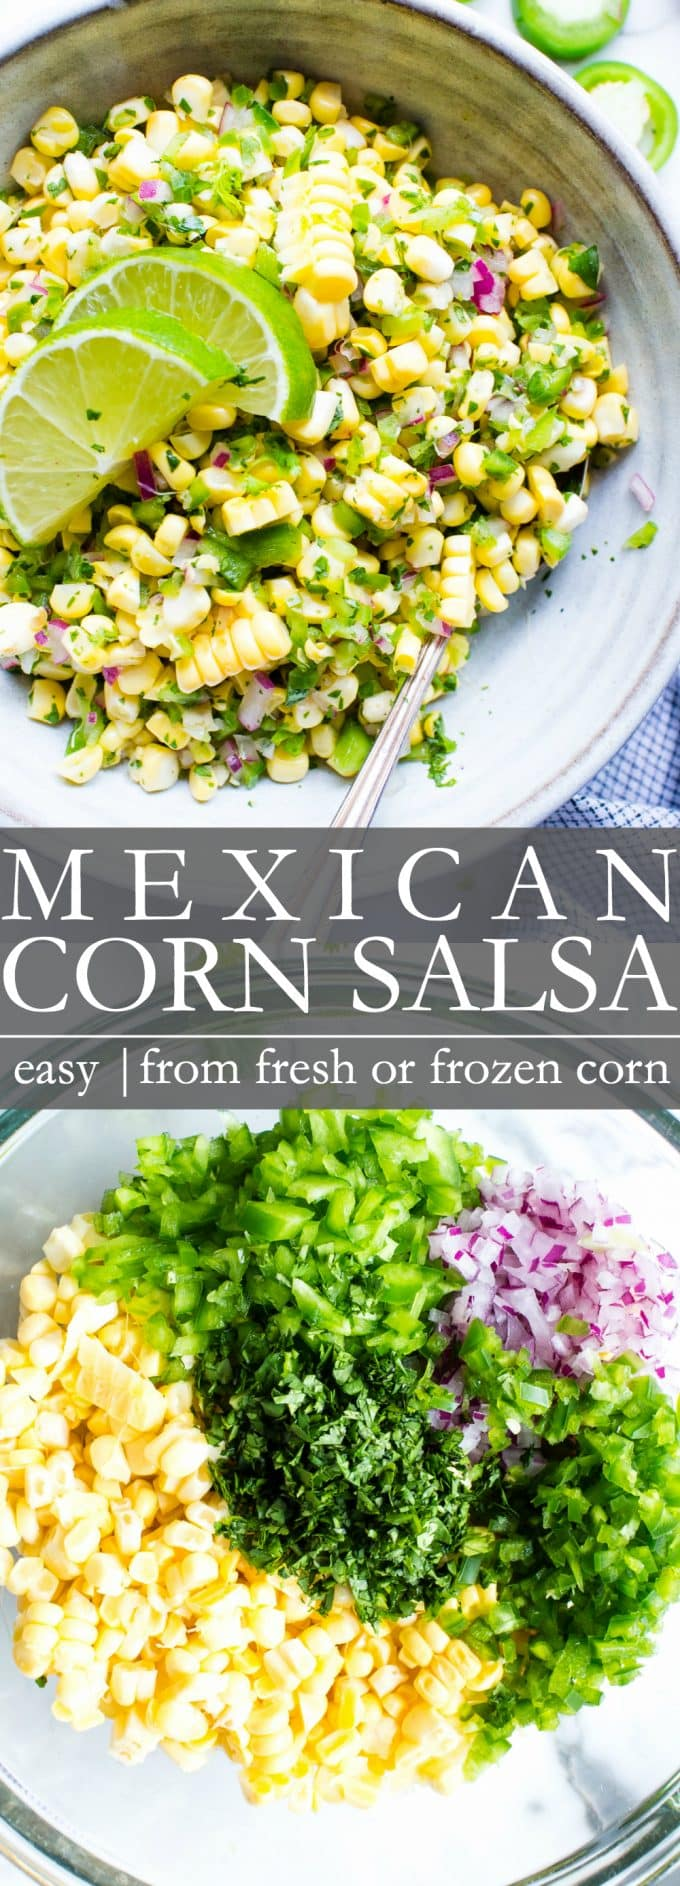 Mexican Corn Salsa Pin